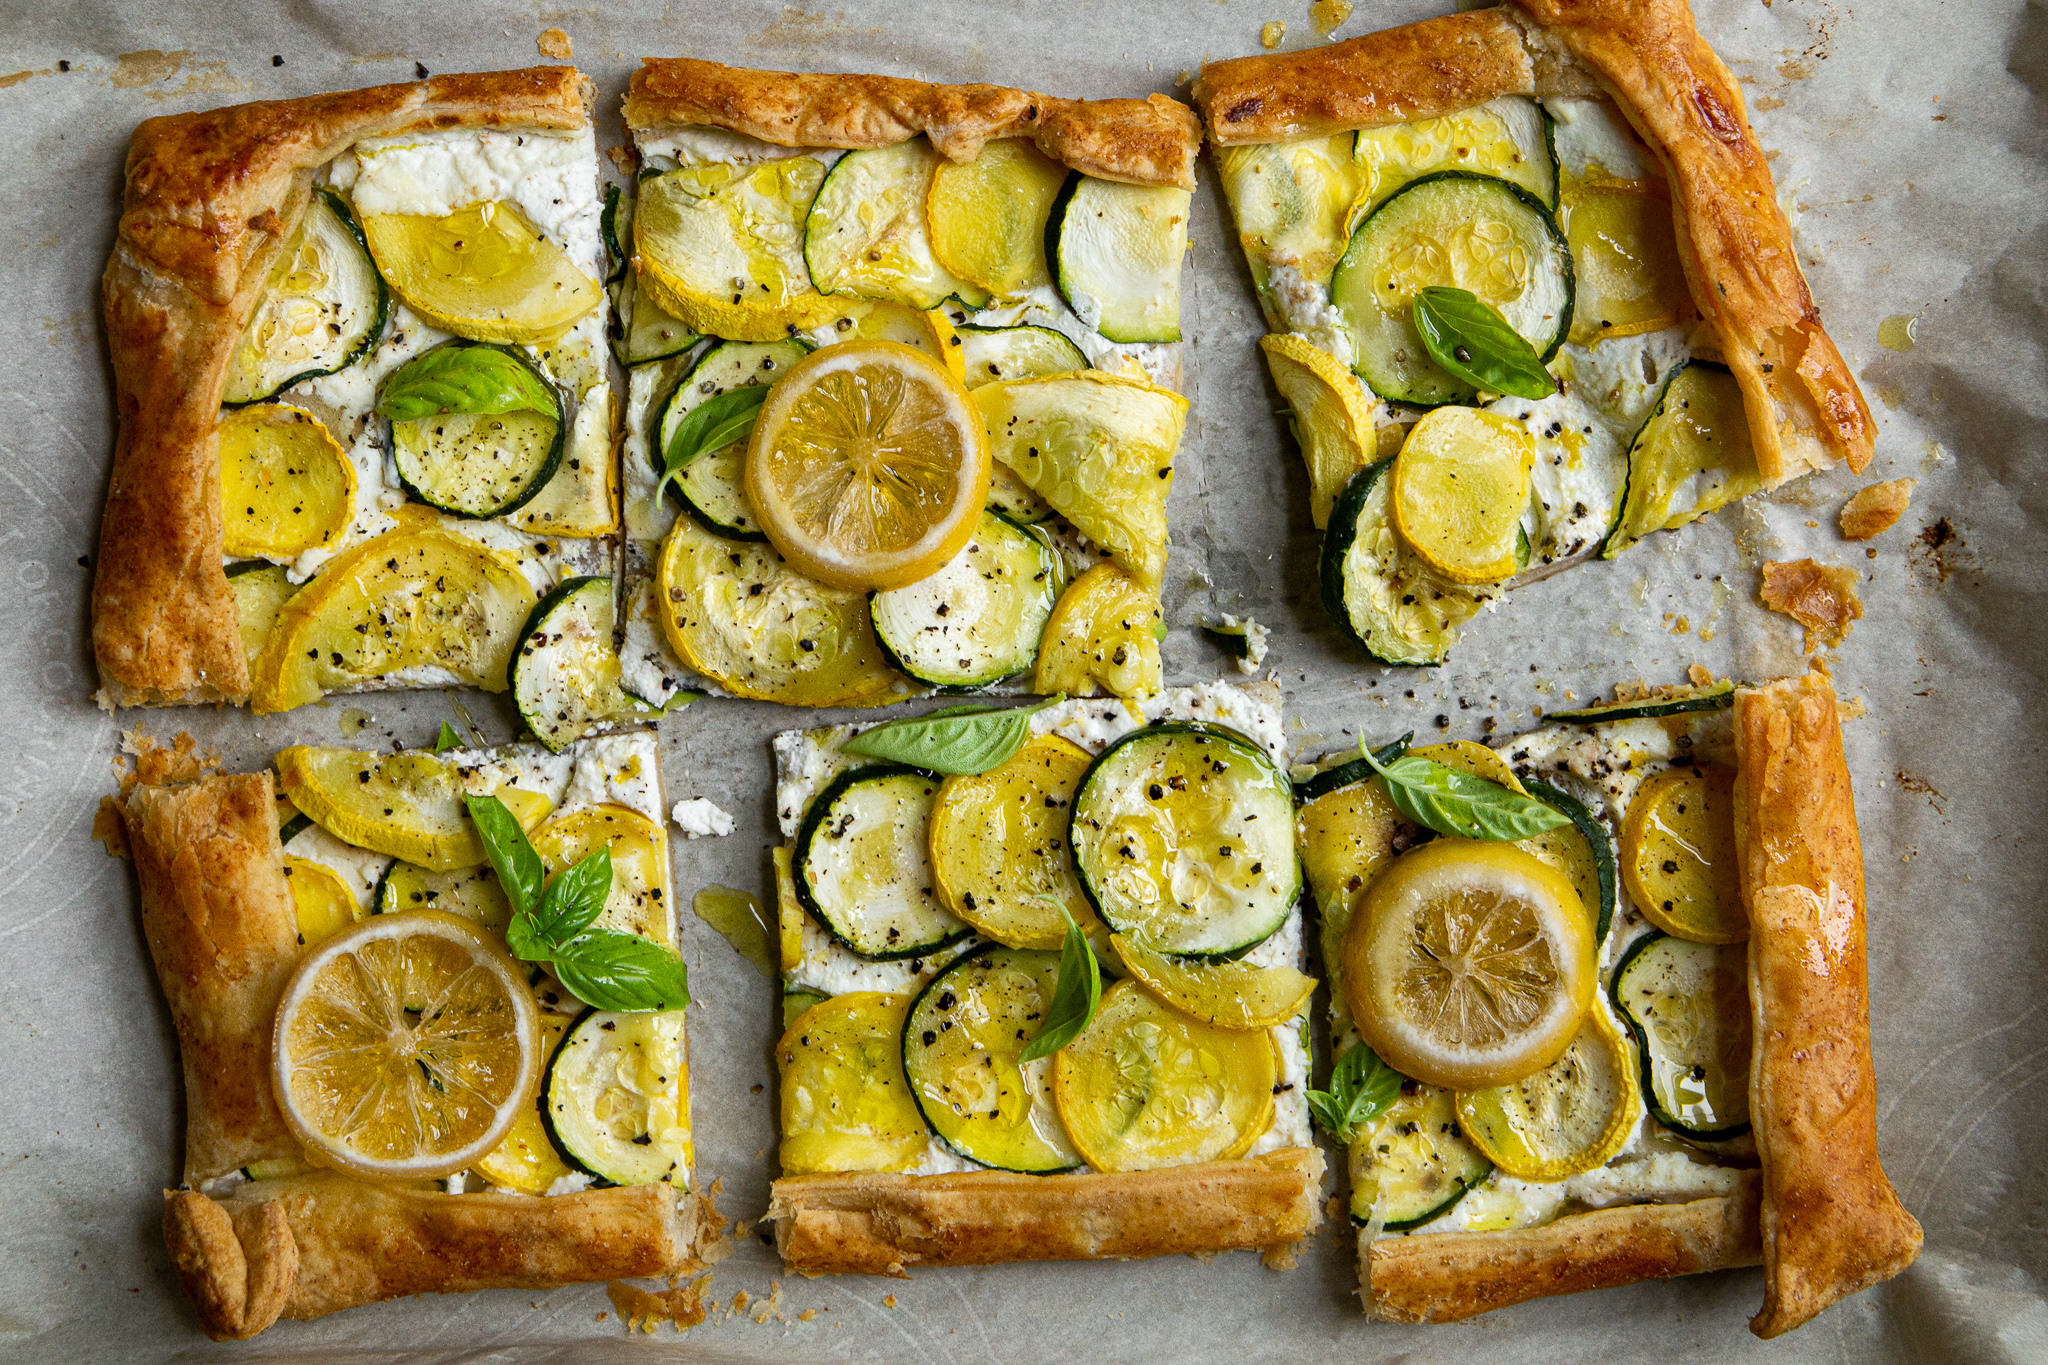 Zucchini Pizza Tart - Best way to use up summer veggies? Eat them in a cheater's pizza.